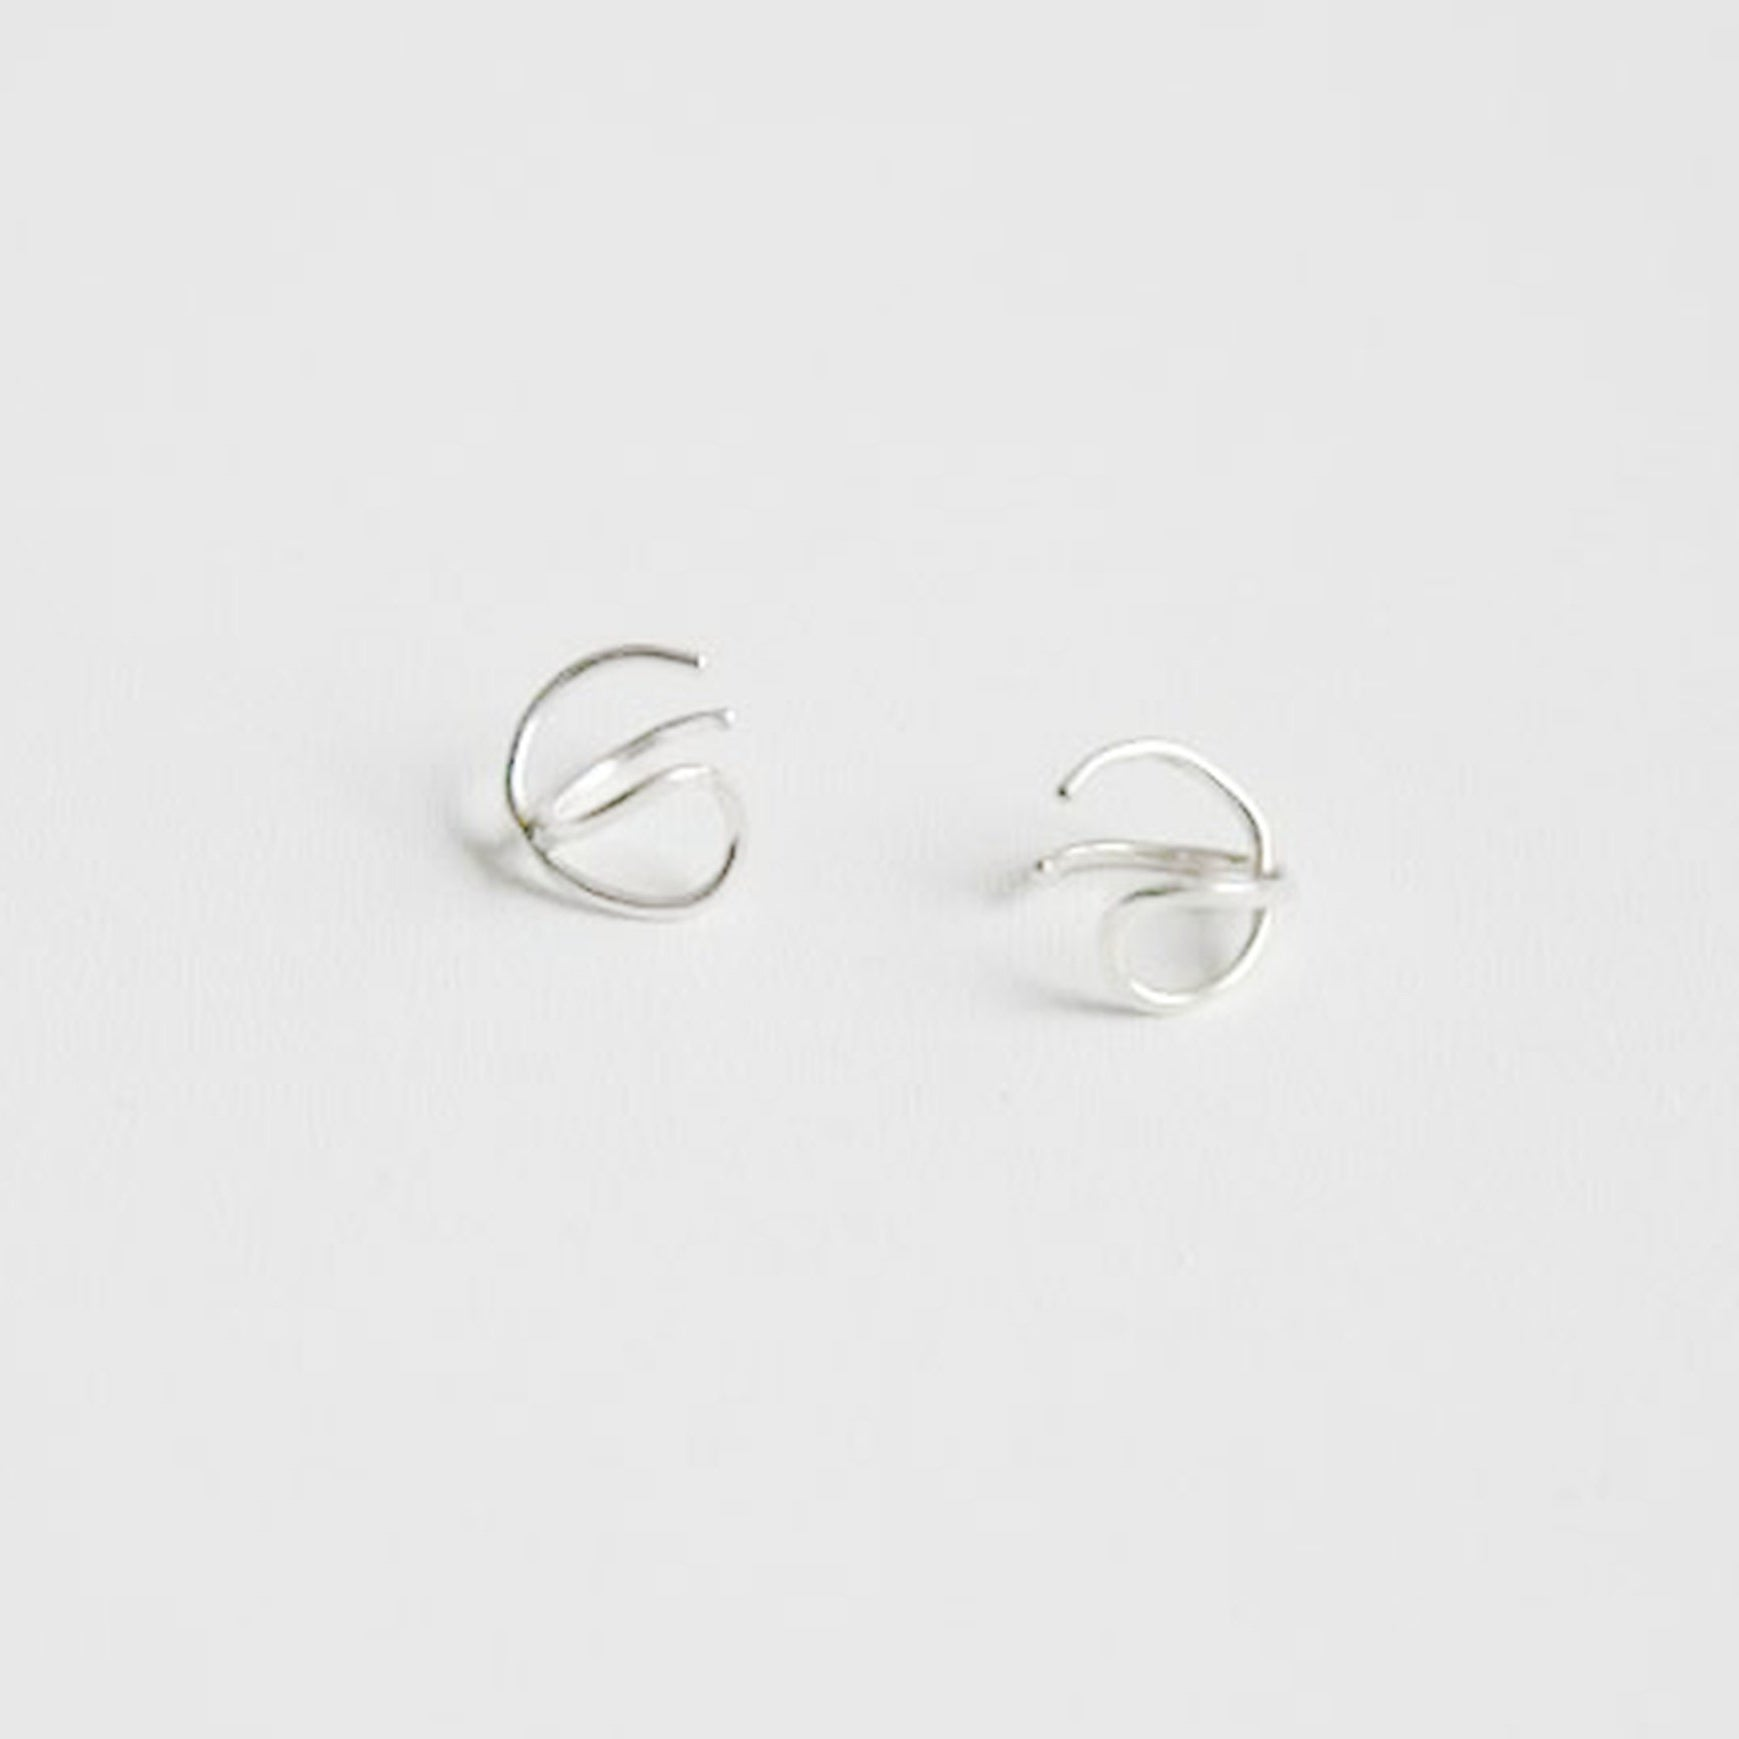 CURA collection hand made ear cuffs